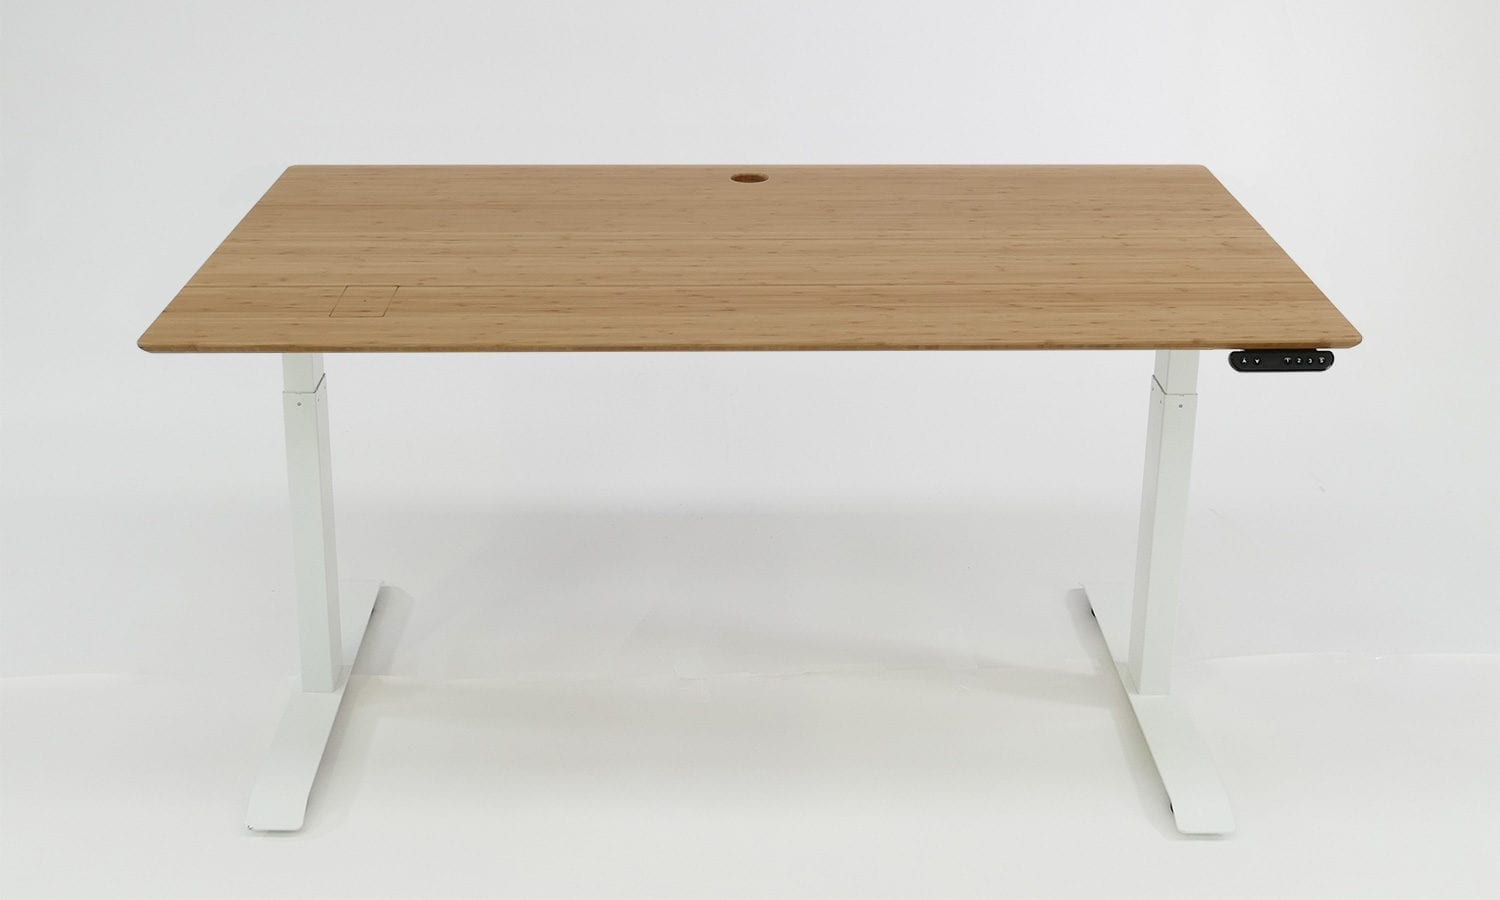 Stand Desk: mid brown bamboo desk top, white frame, 1500 x 800